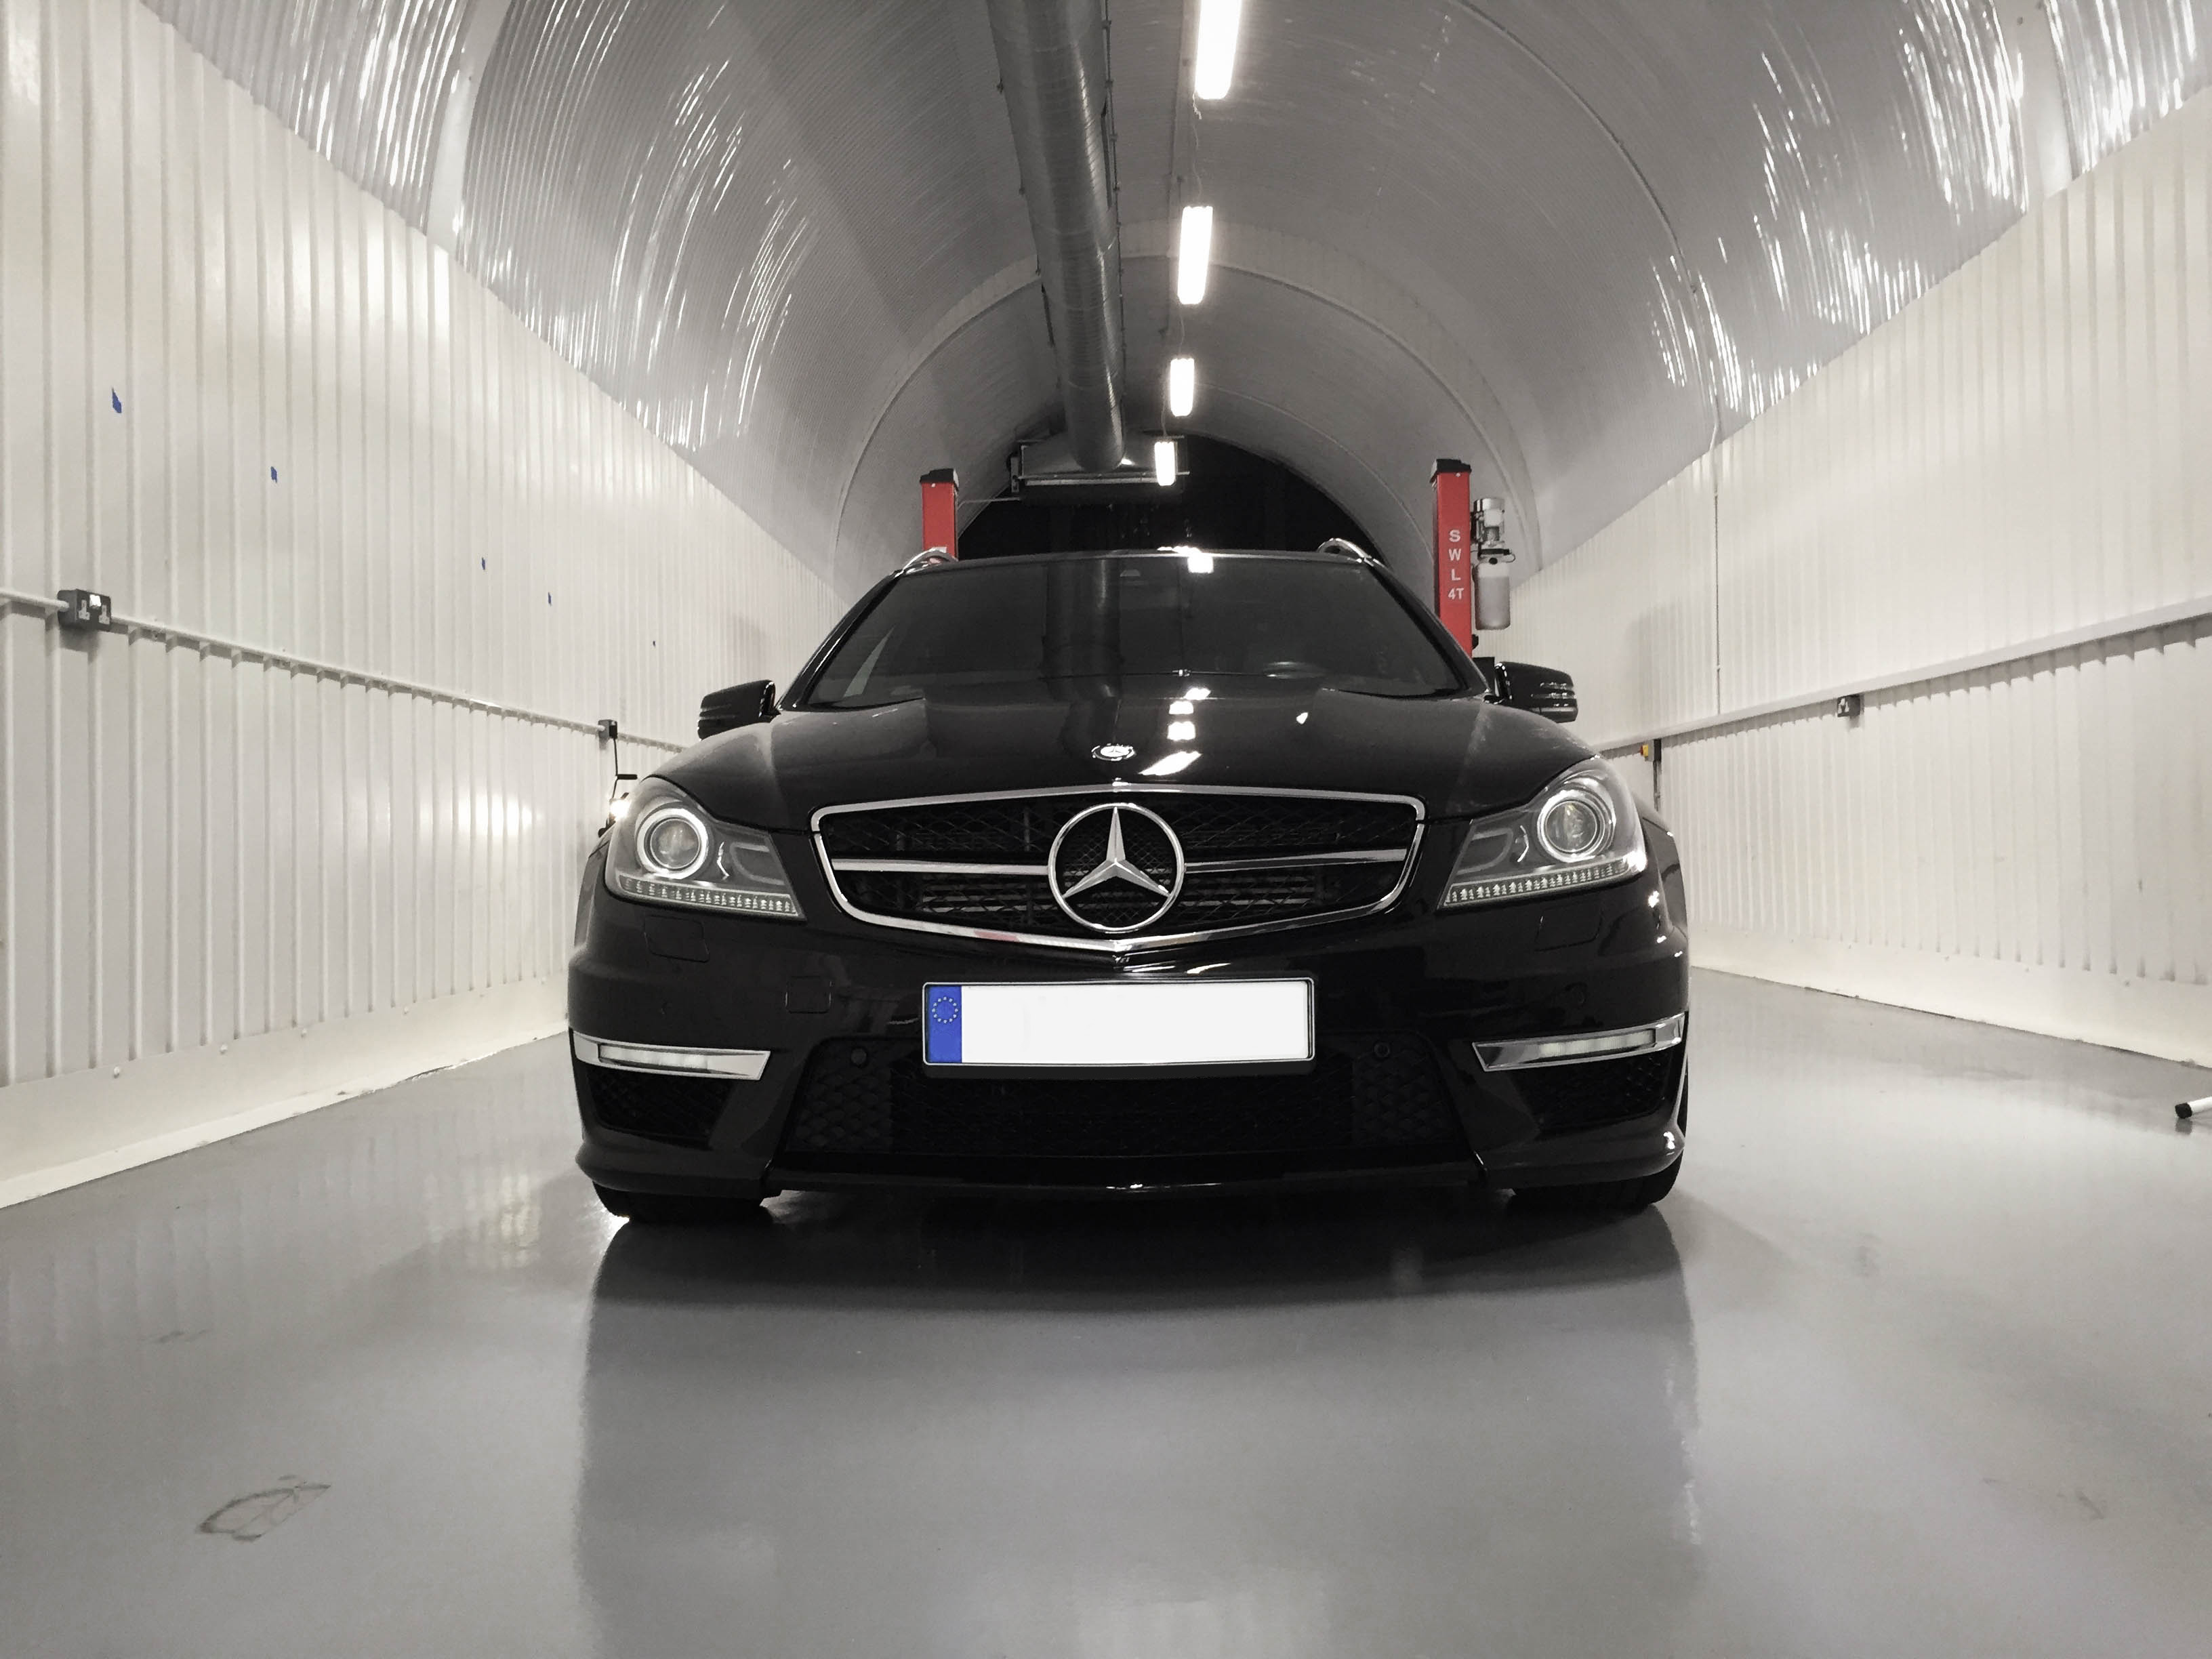 Mercedes C63 Touring –  Head on